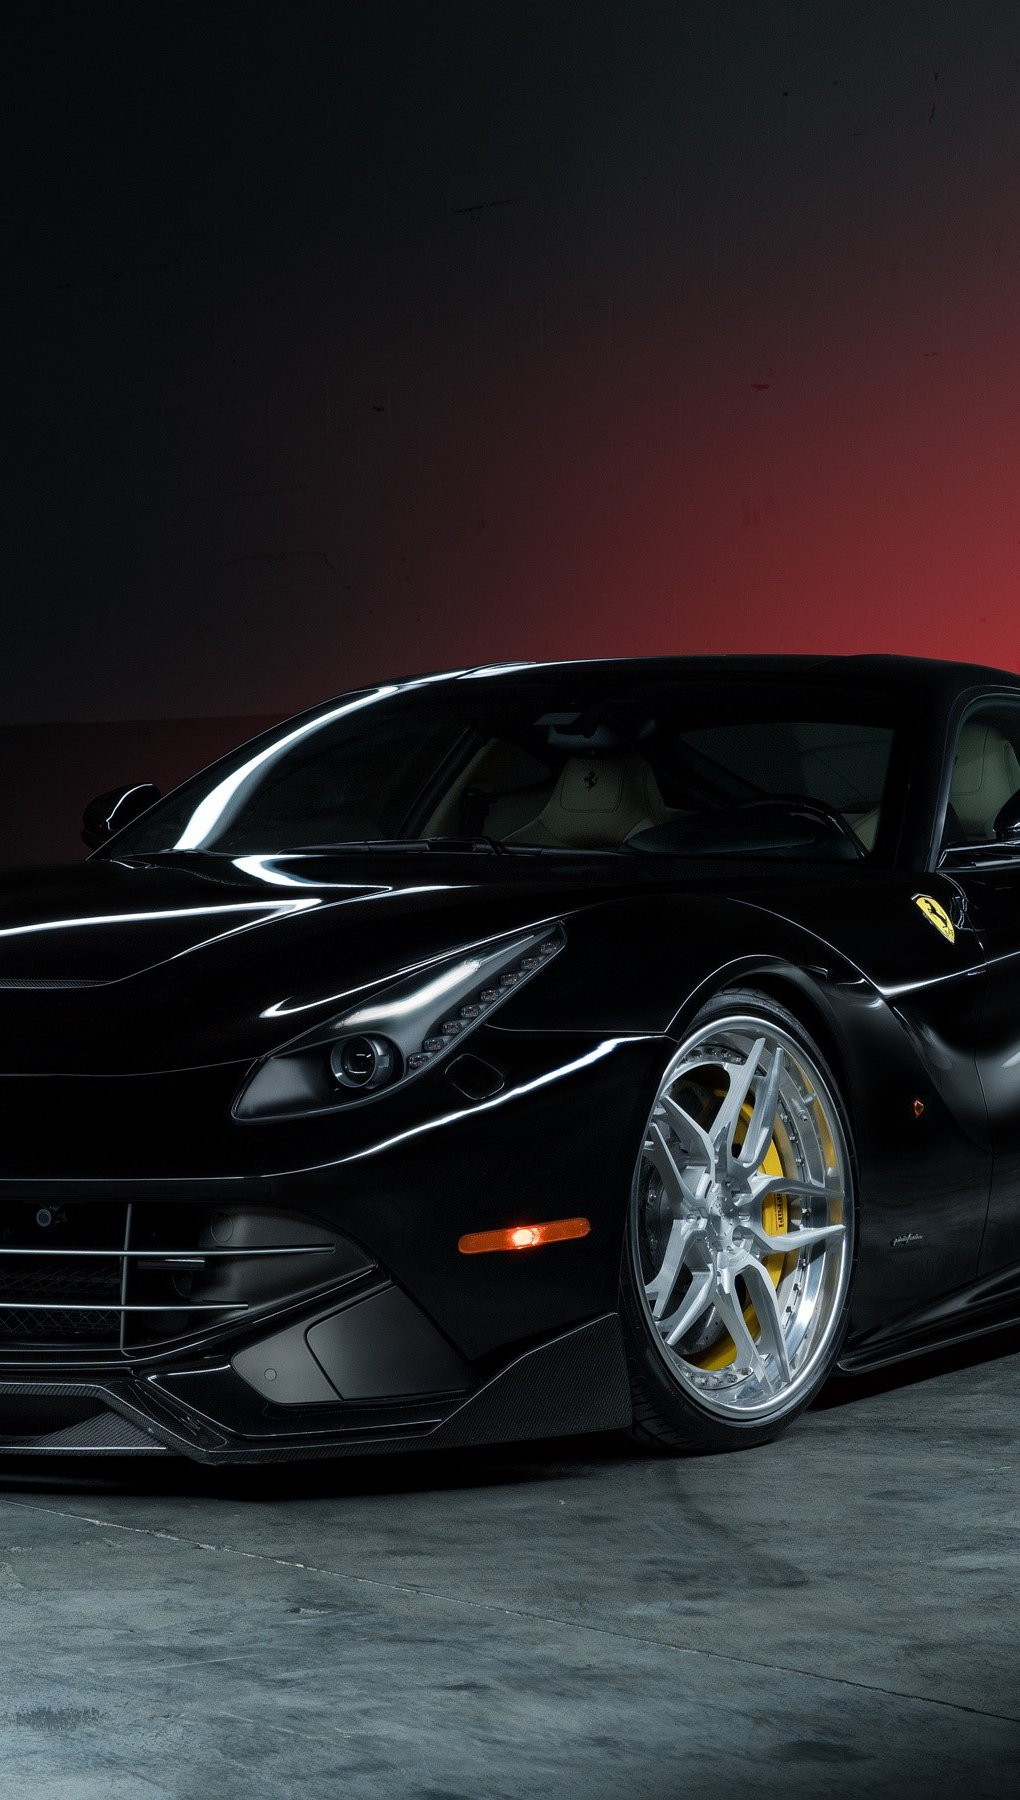 Wallpaper Ferrari F12 berlinetta Vertical